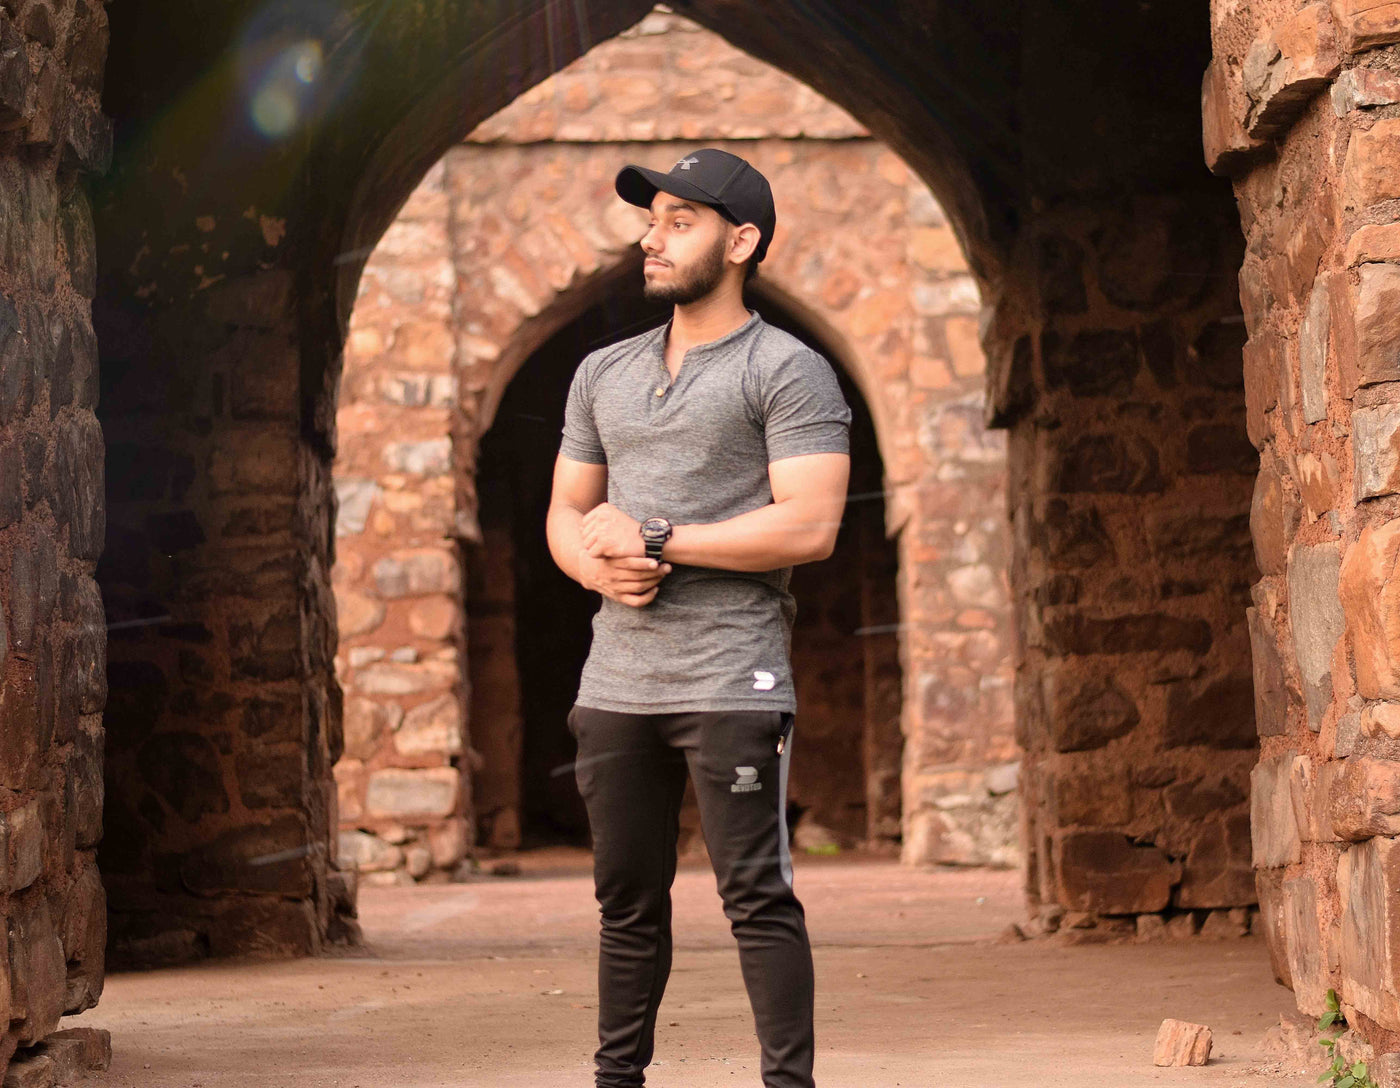 Devoted Dri-Stretch Pro Collection of Gym tshirts, vests & joggers in Dry Fit - Navjot Singh (@NavjotSingh27)